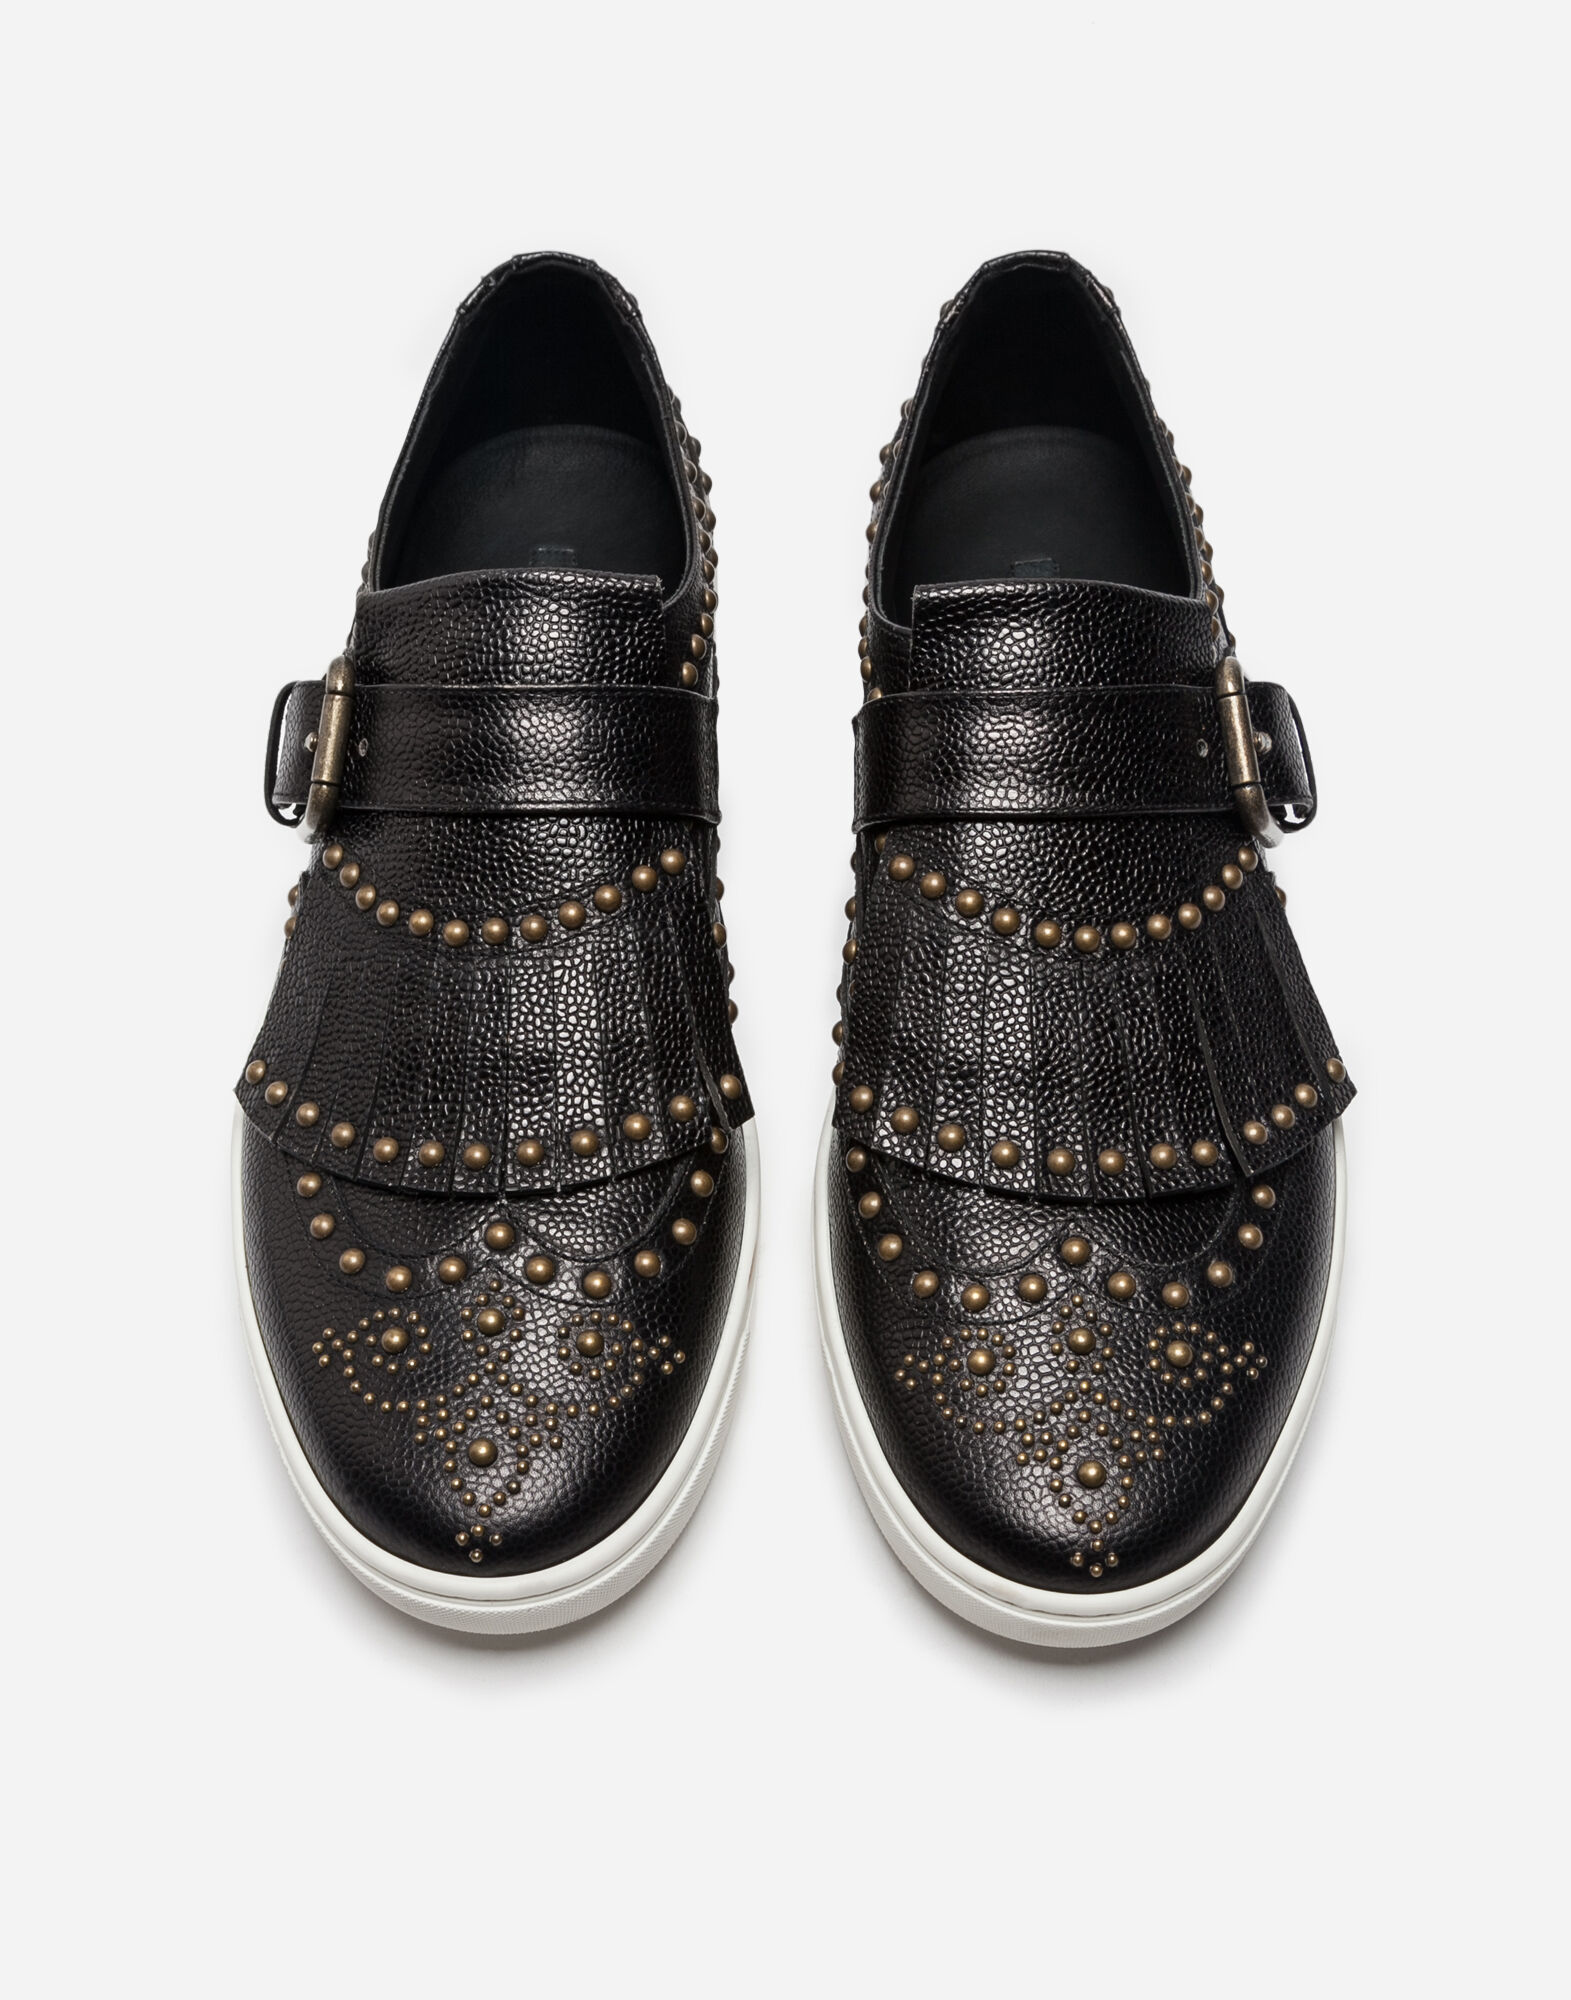 LEATHER LONDON SLIP-ON SNEAKERS WITH STUDS